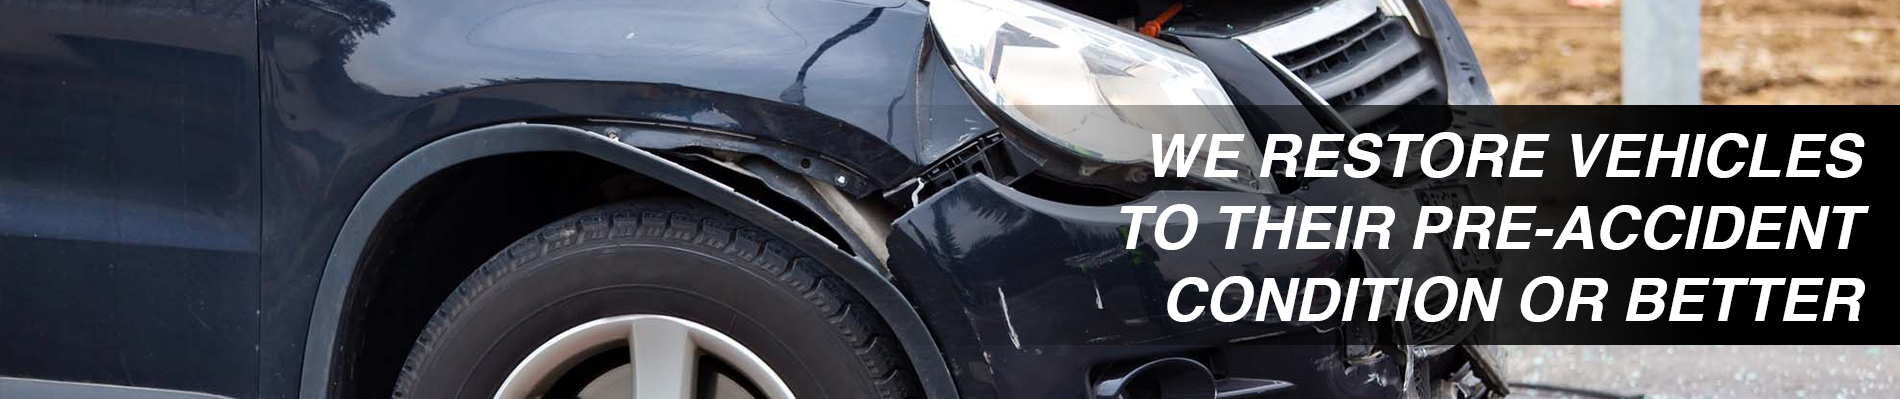 We Restore Vehicles to Their Pre-Accident Condition or Better